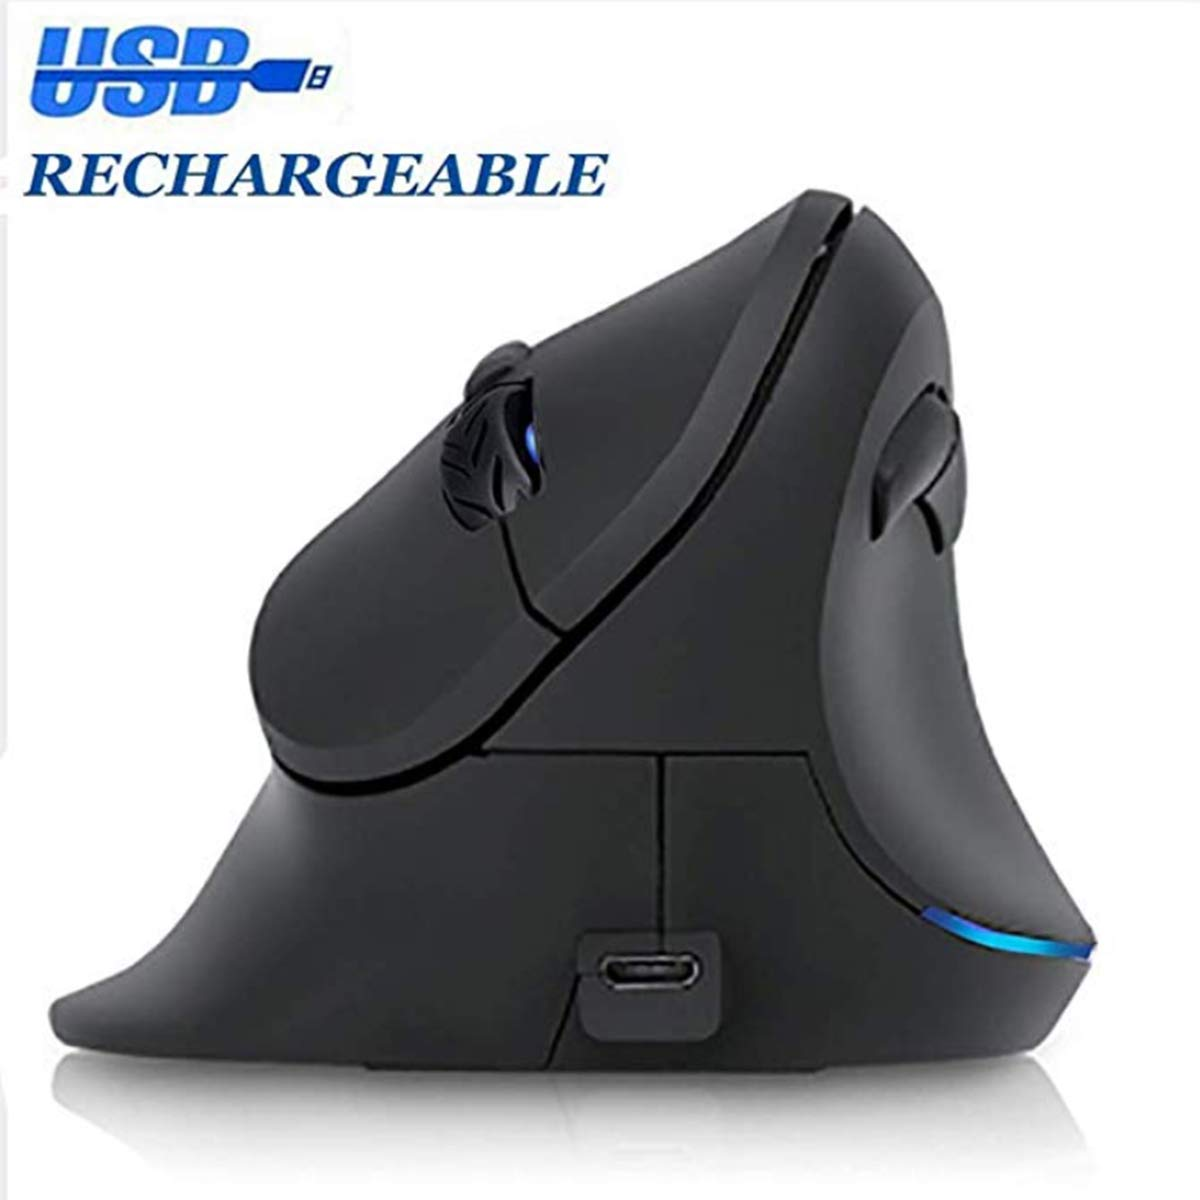 Rechargeable Ergonomic Mouse, TOP SKY Vertical Wireless Mouse, Ergonomic Mouse Adjustable 1000 1200 1600 DPI, 6 Buttons 2.4GHz Right Hand Optical Mouse with USB Connection for PC Laptop